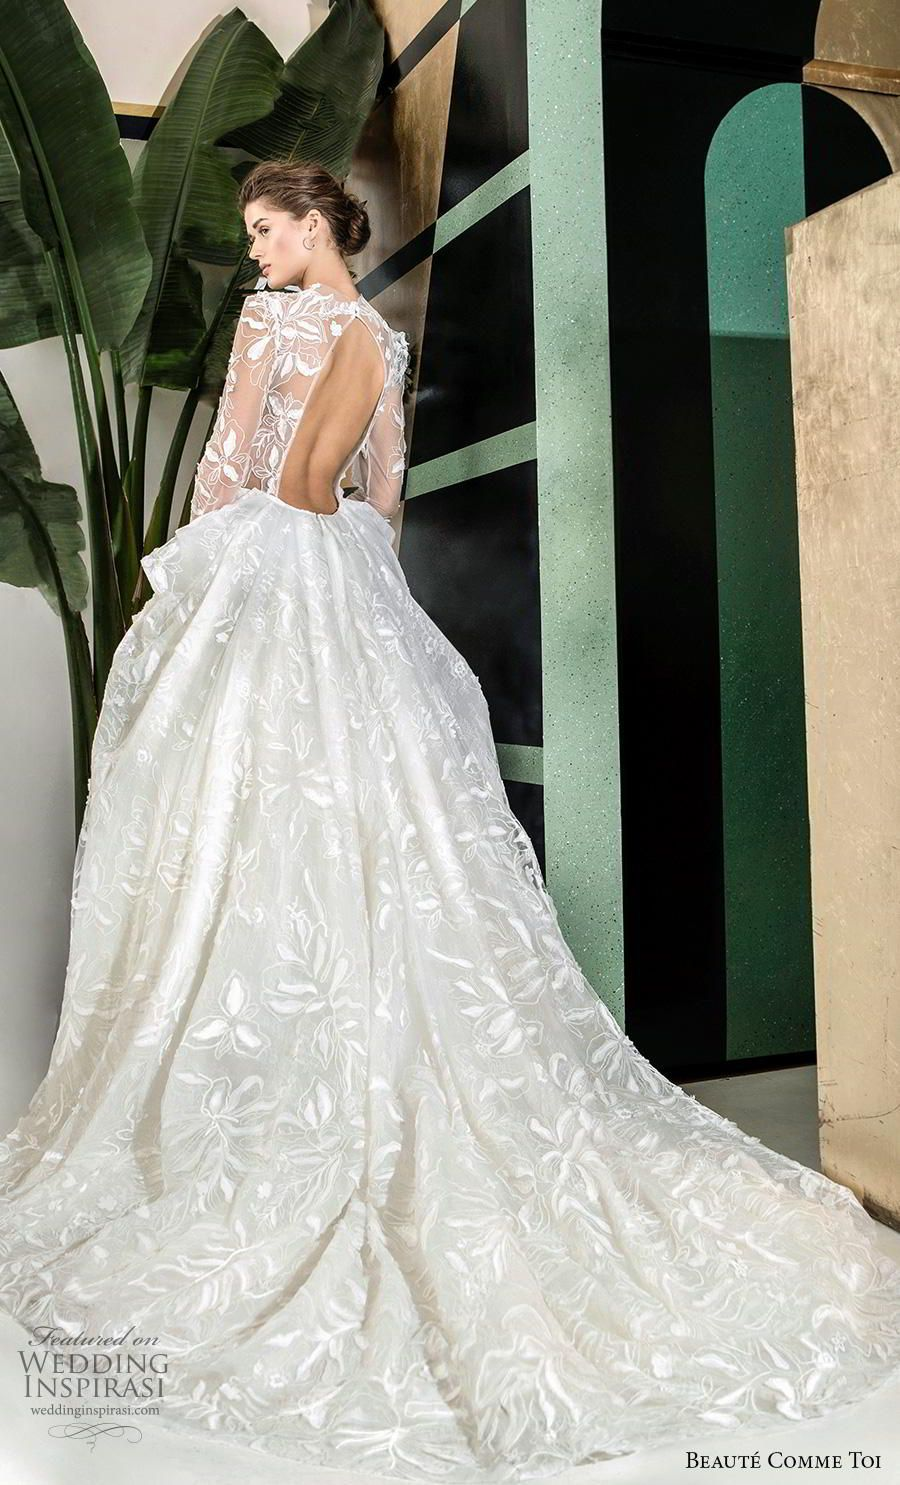 Breathtaking Modern Vintage Wedding Dresses By Beaute Comme Toi Fall Winter 2019 Bridal Collection Wedding Inspirasi Wedding Dresses Vintage Wedding Dresses Simple Wedding Dresses [ 1485 x 900 Pixel ]